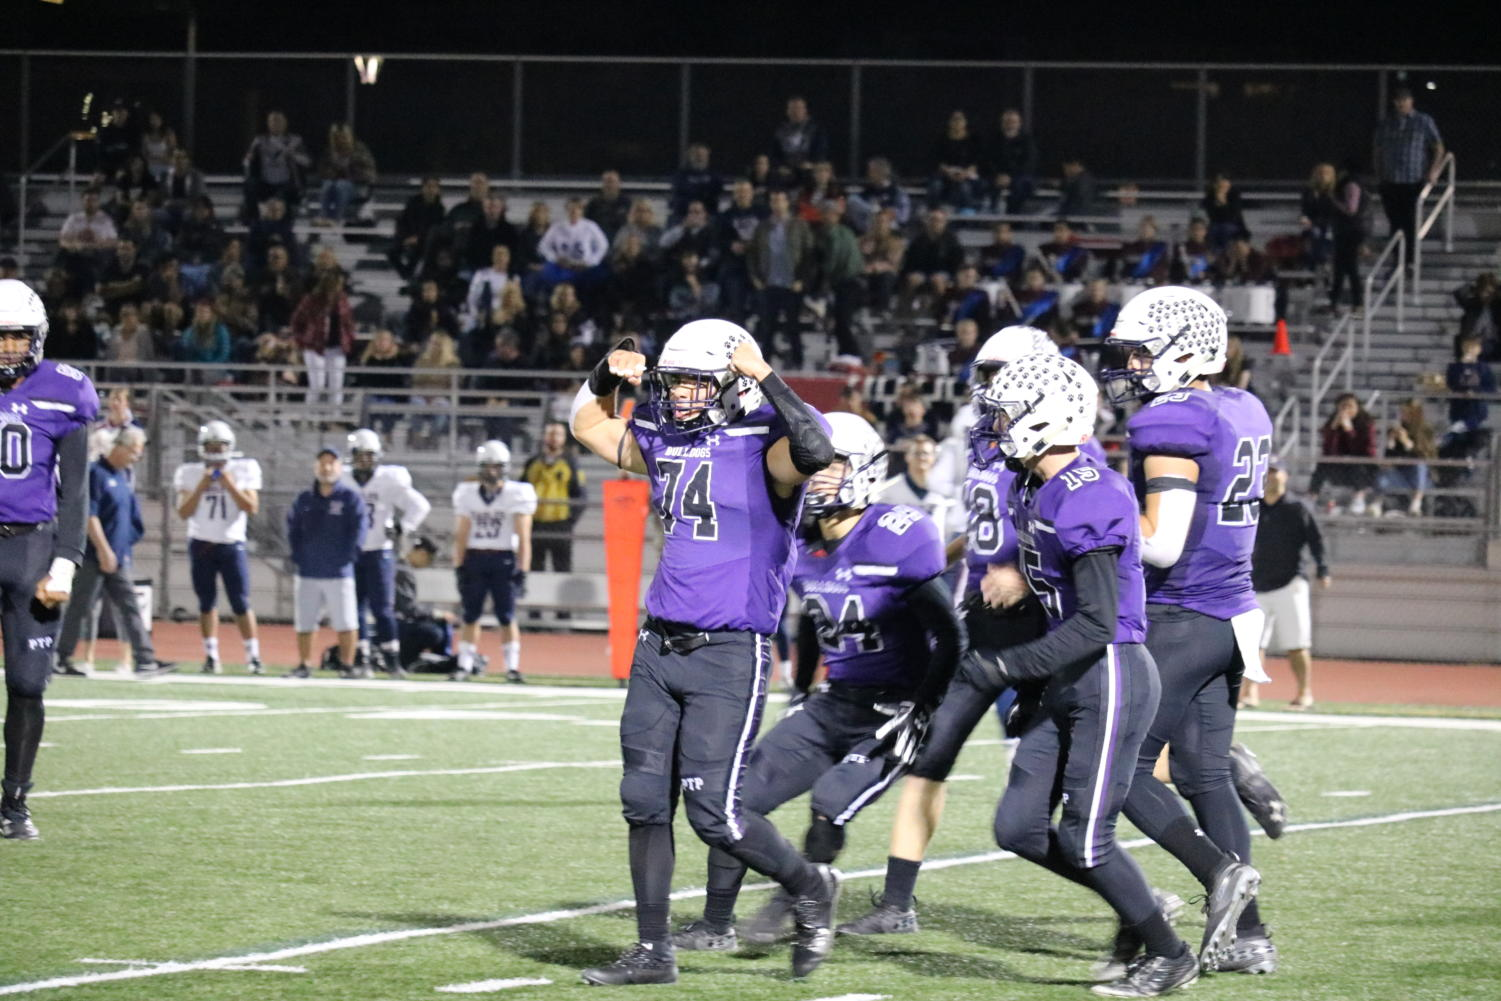 Valerin celebrates alongside his teammates after a big defensive play. The Bulldogs defense was able to contain Capistrano Valley Christian to just 19 points and hopes to continue this dominant play throughout the CIF run to help propel the team's dynamic offense to victory.